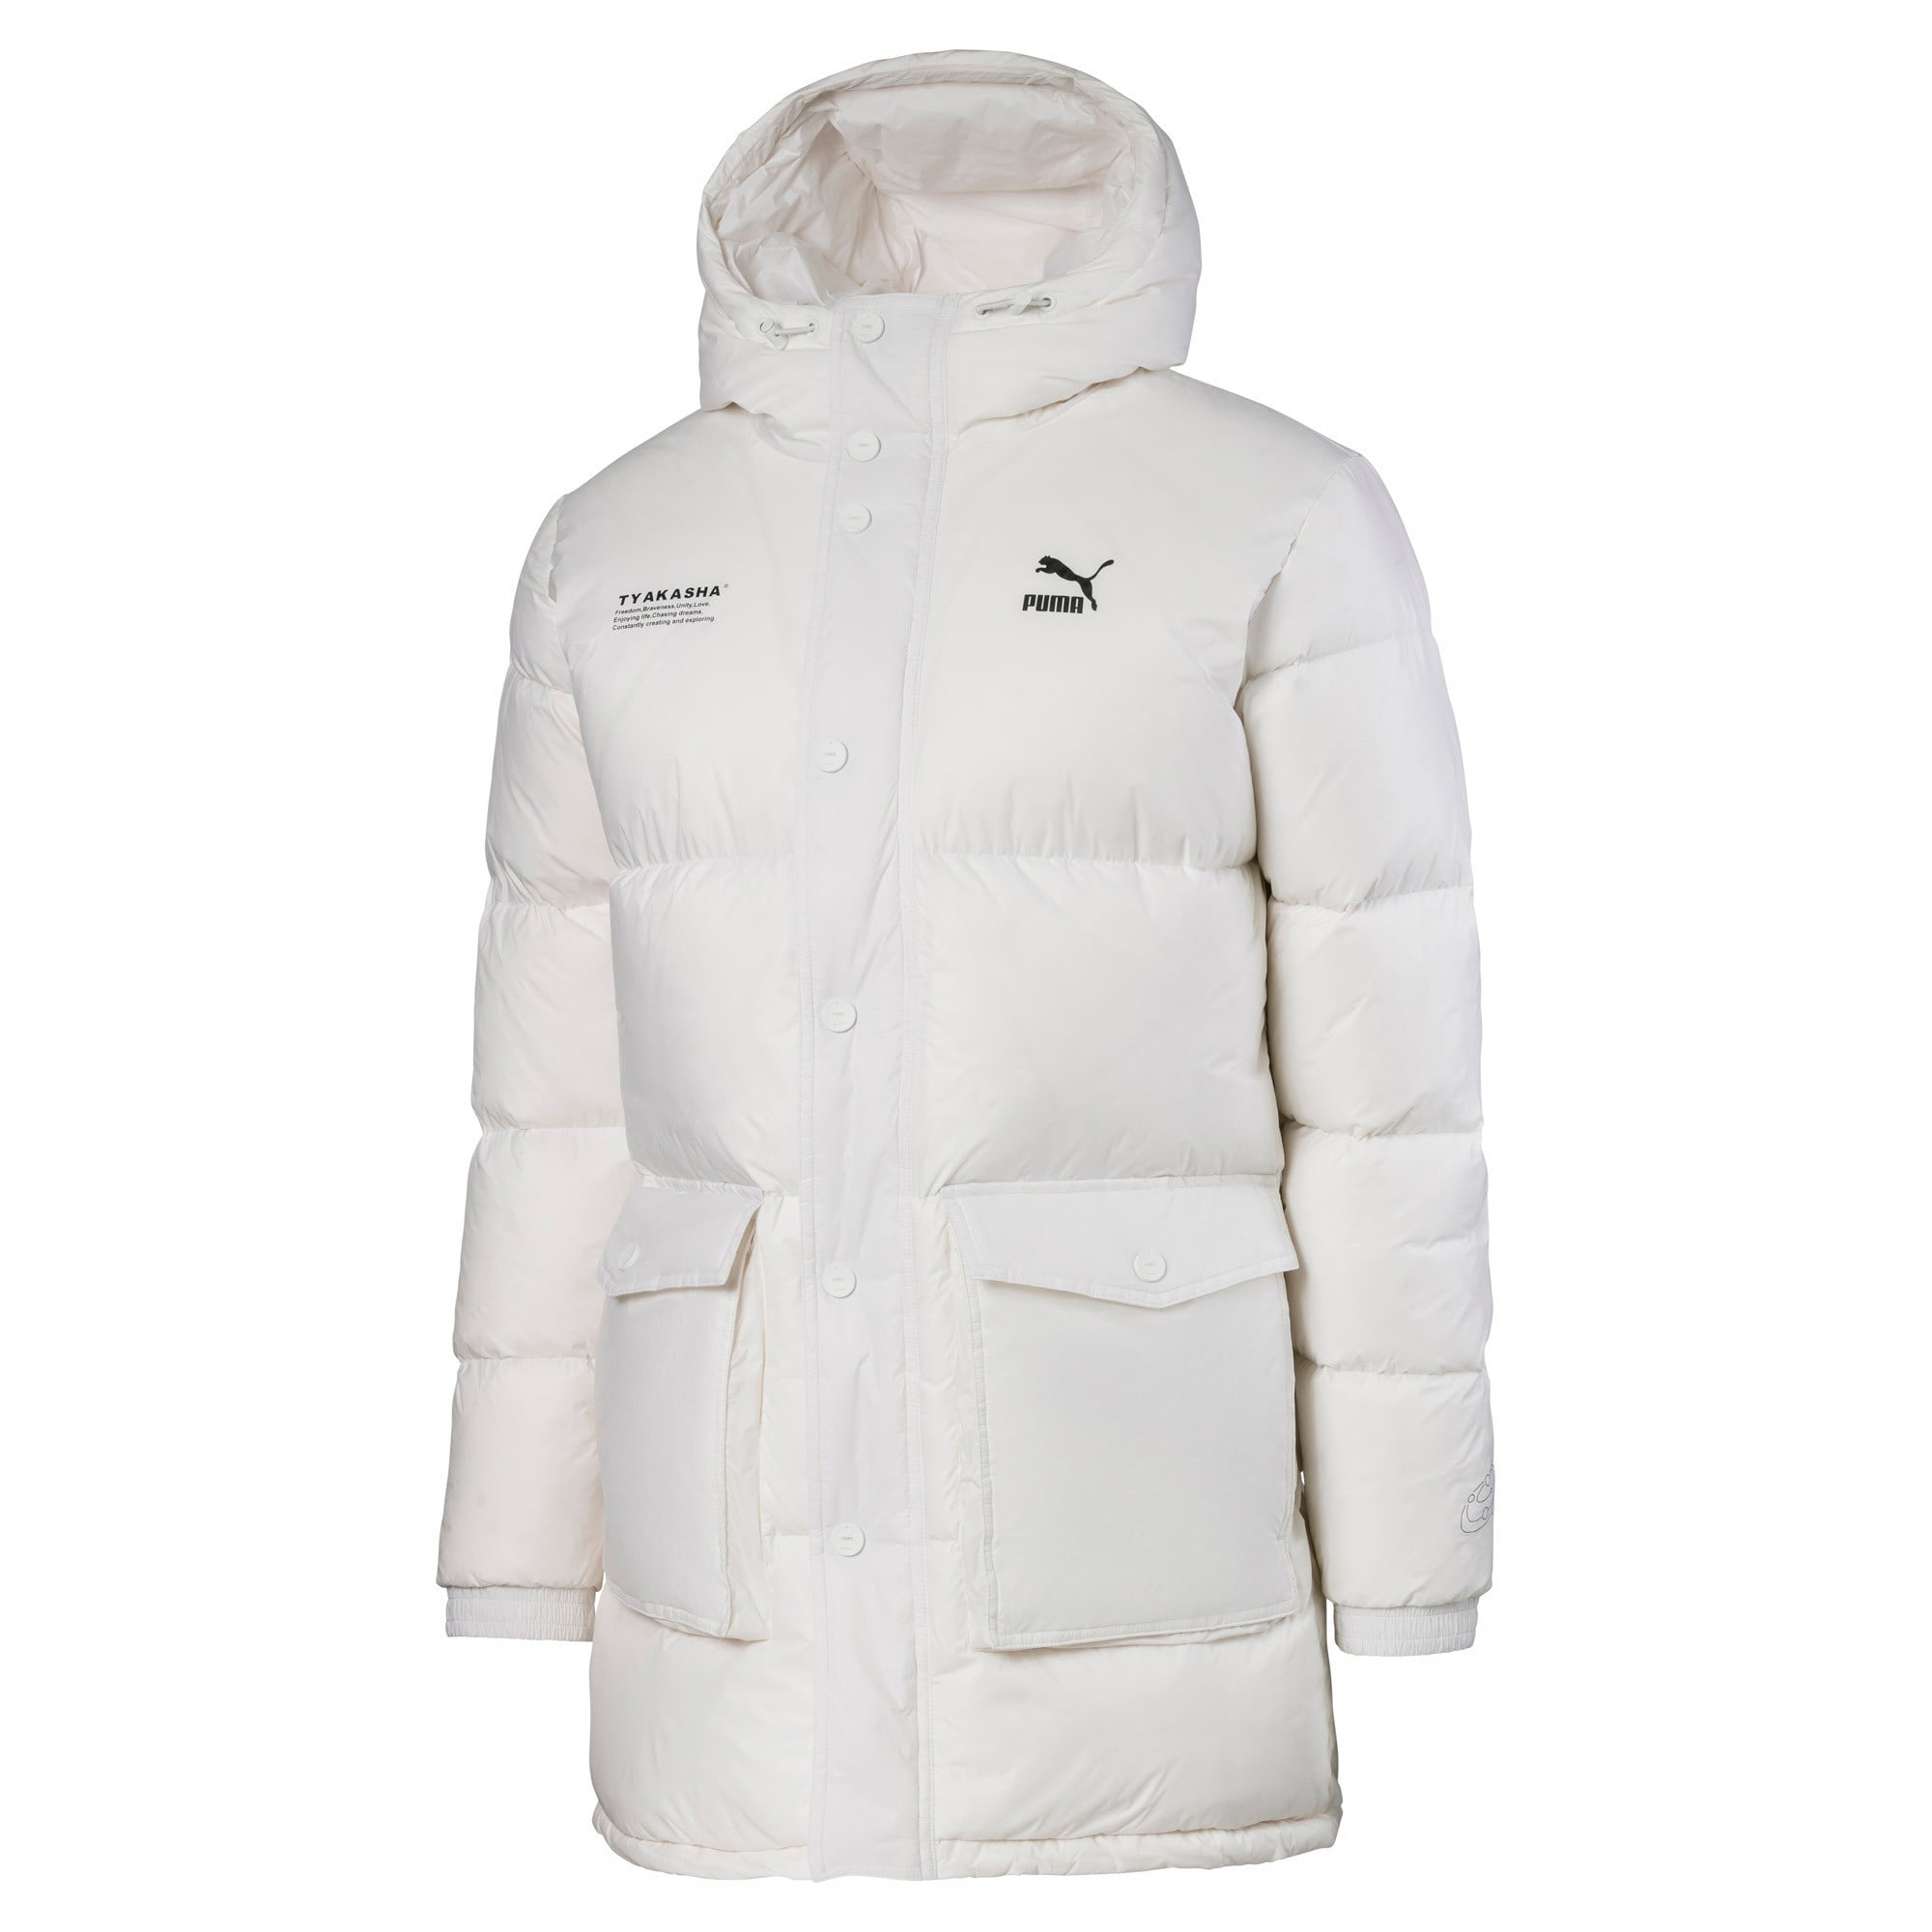 Thumbnail 1 of PUMA x TYAKASHA Woven Down Parka, Puma White, medium